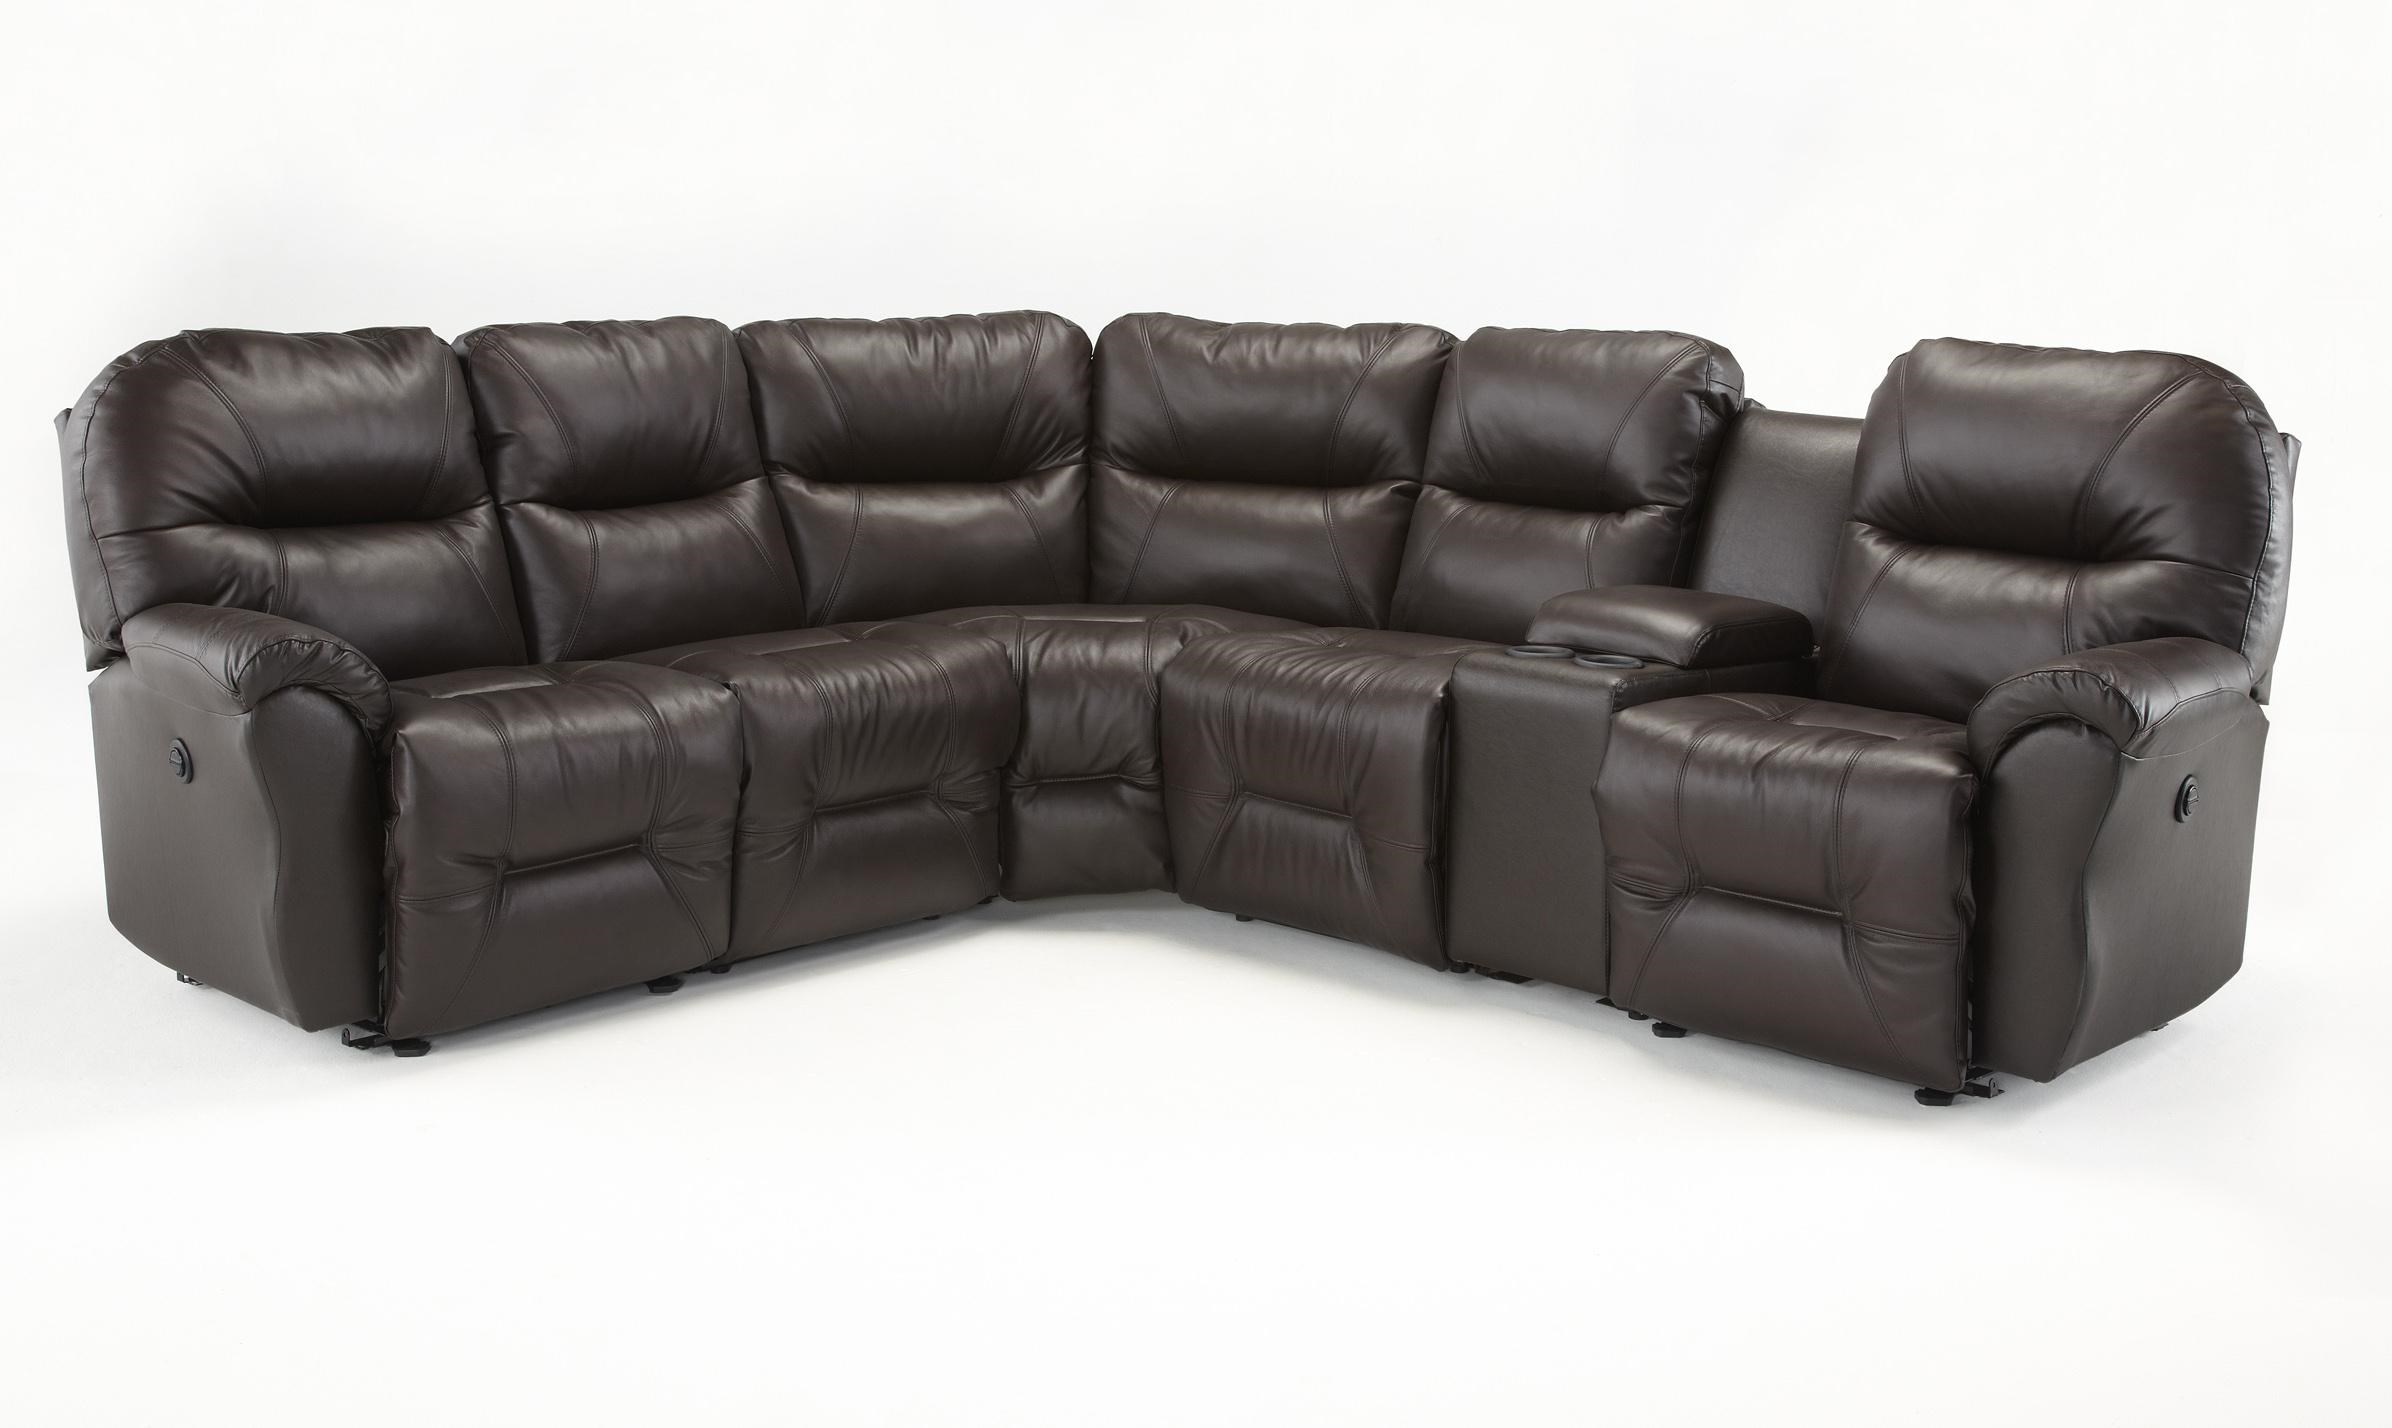 Delicieux Best Home Furnishings Bodie Six Piece Reclining Sectional Sofa